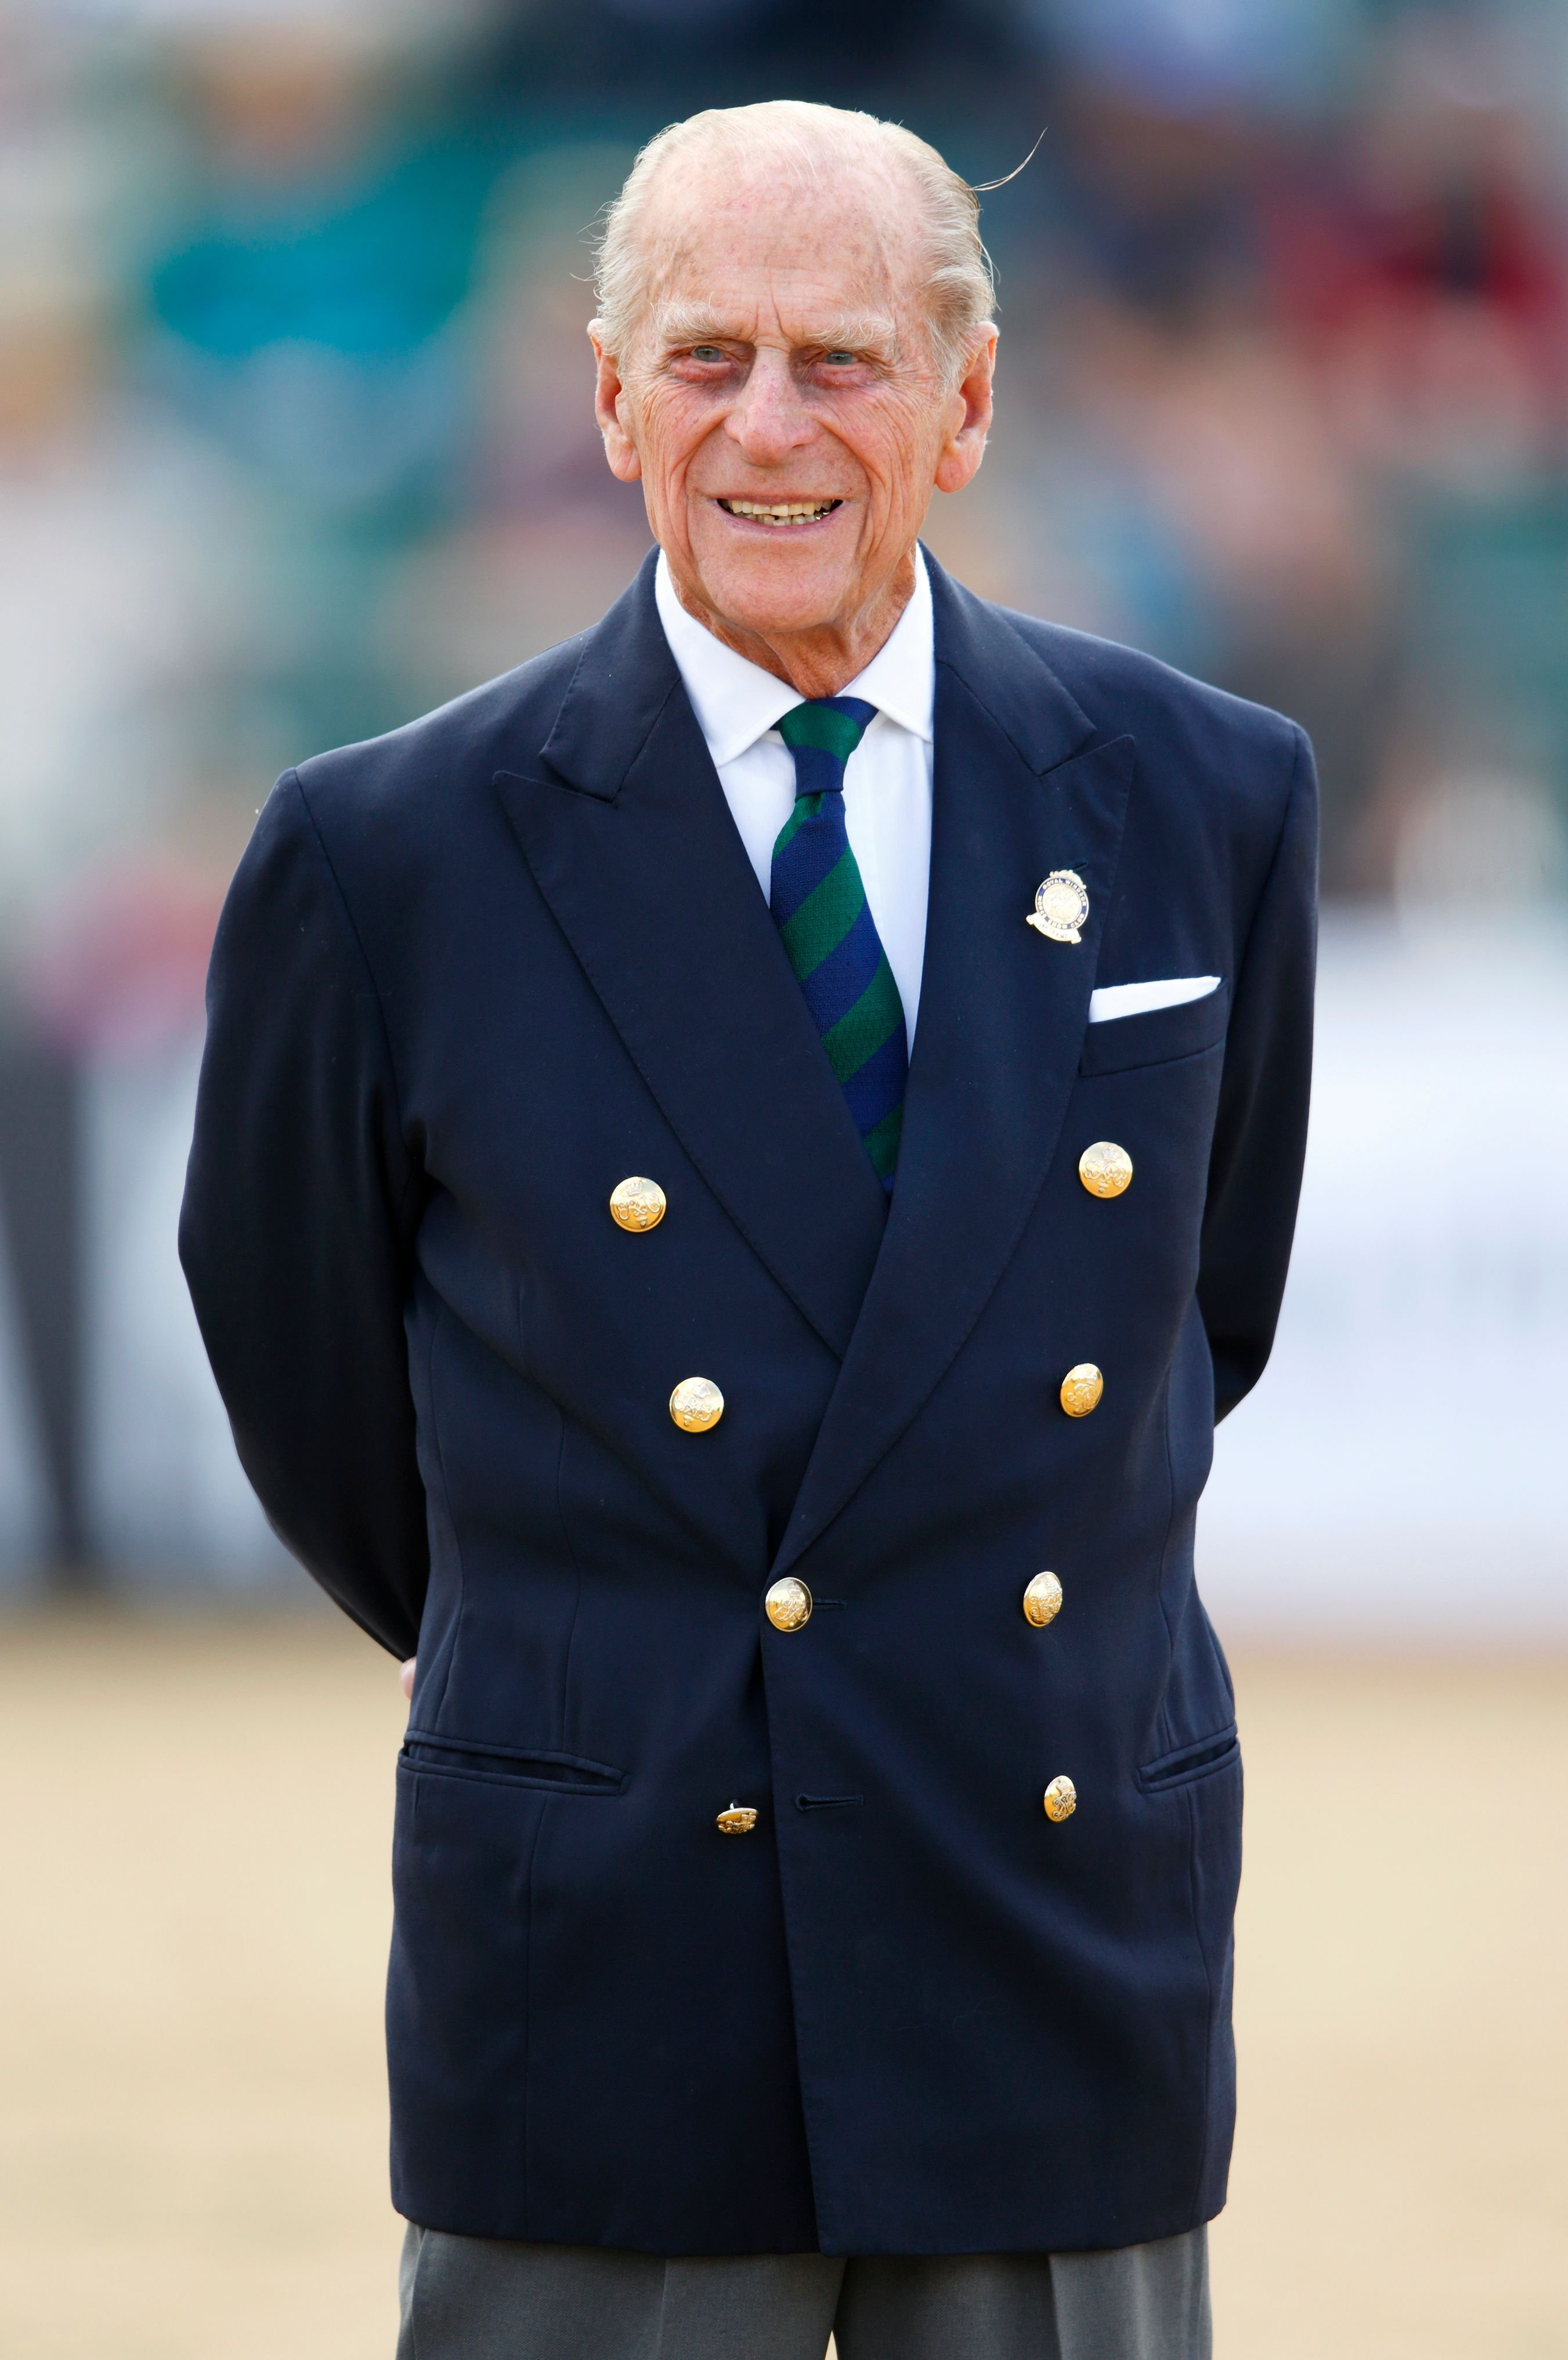 Prince Philip on May 15, 2014 in Windsor, England. | Photo: Getty Images